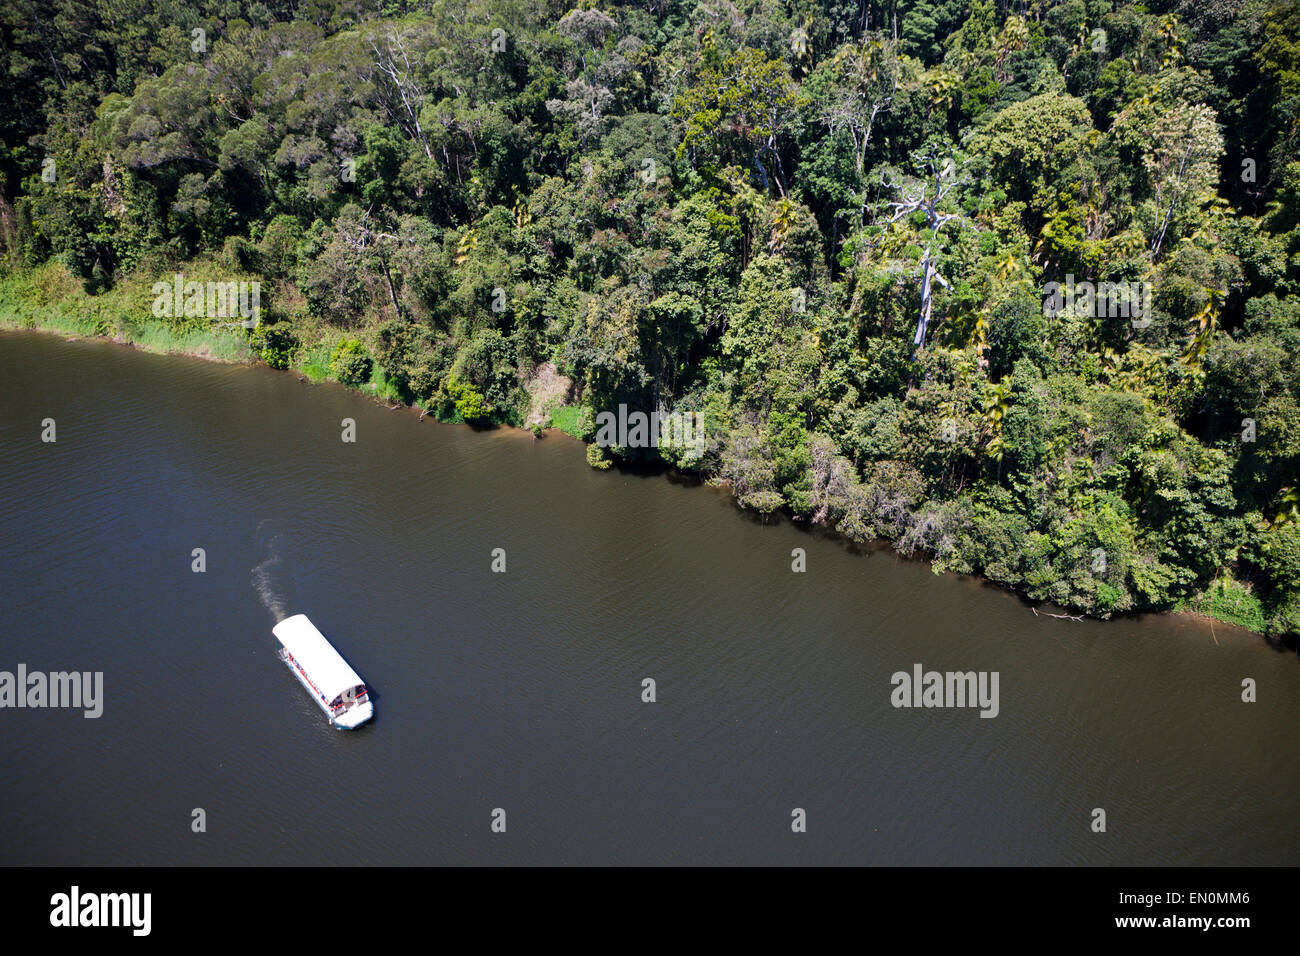 Riverboat Tours on Barron River, Kuranda, Cairns, Australia - Stock Image